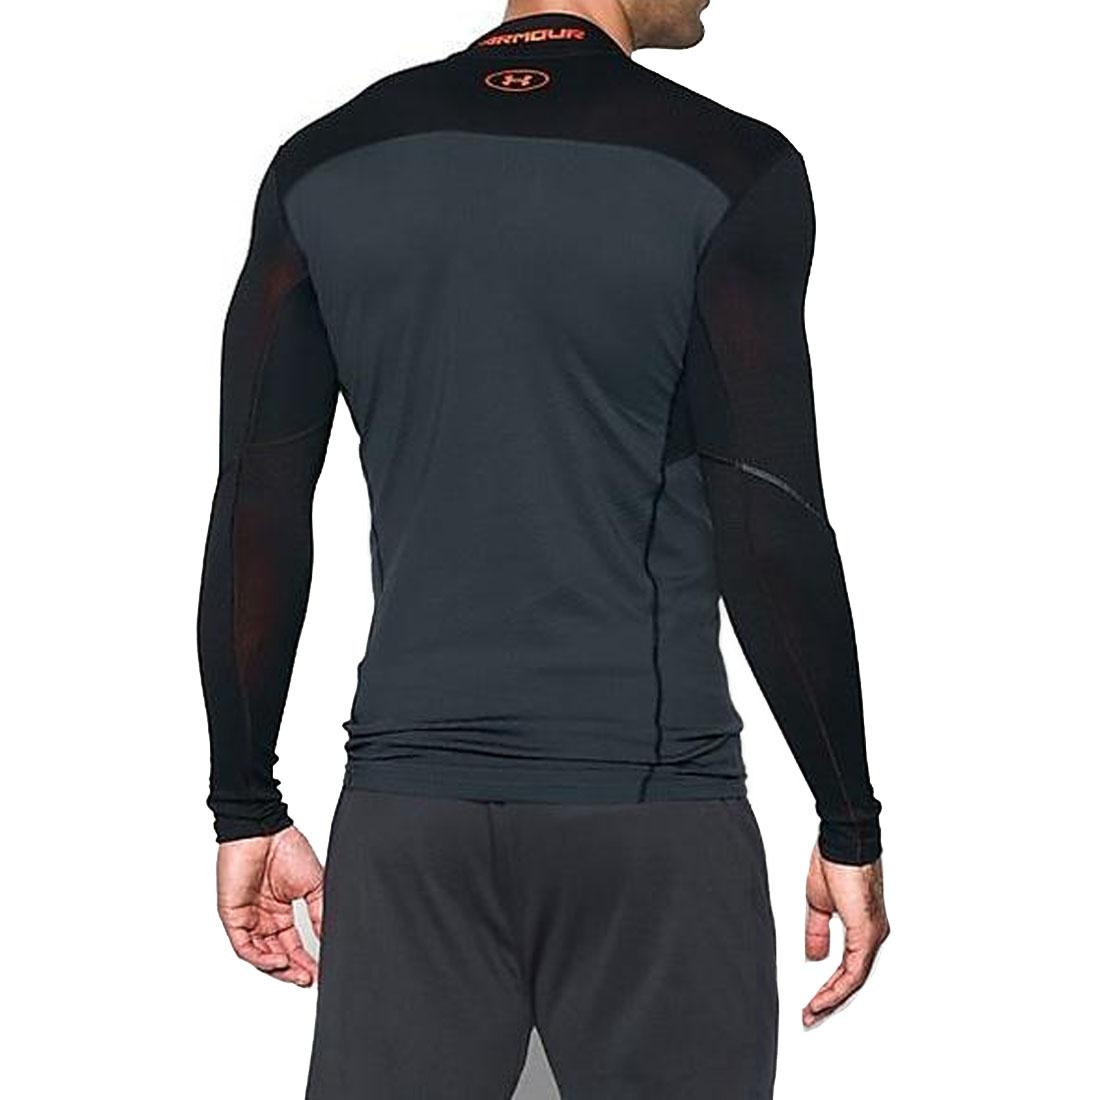 słodkie tanie San Francisco Stany Zjednoczone Details about Under Armour Storm ColdGear CGI Elements Mock Mens Gym Sports  Compression Top